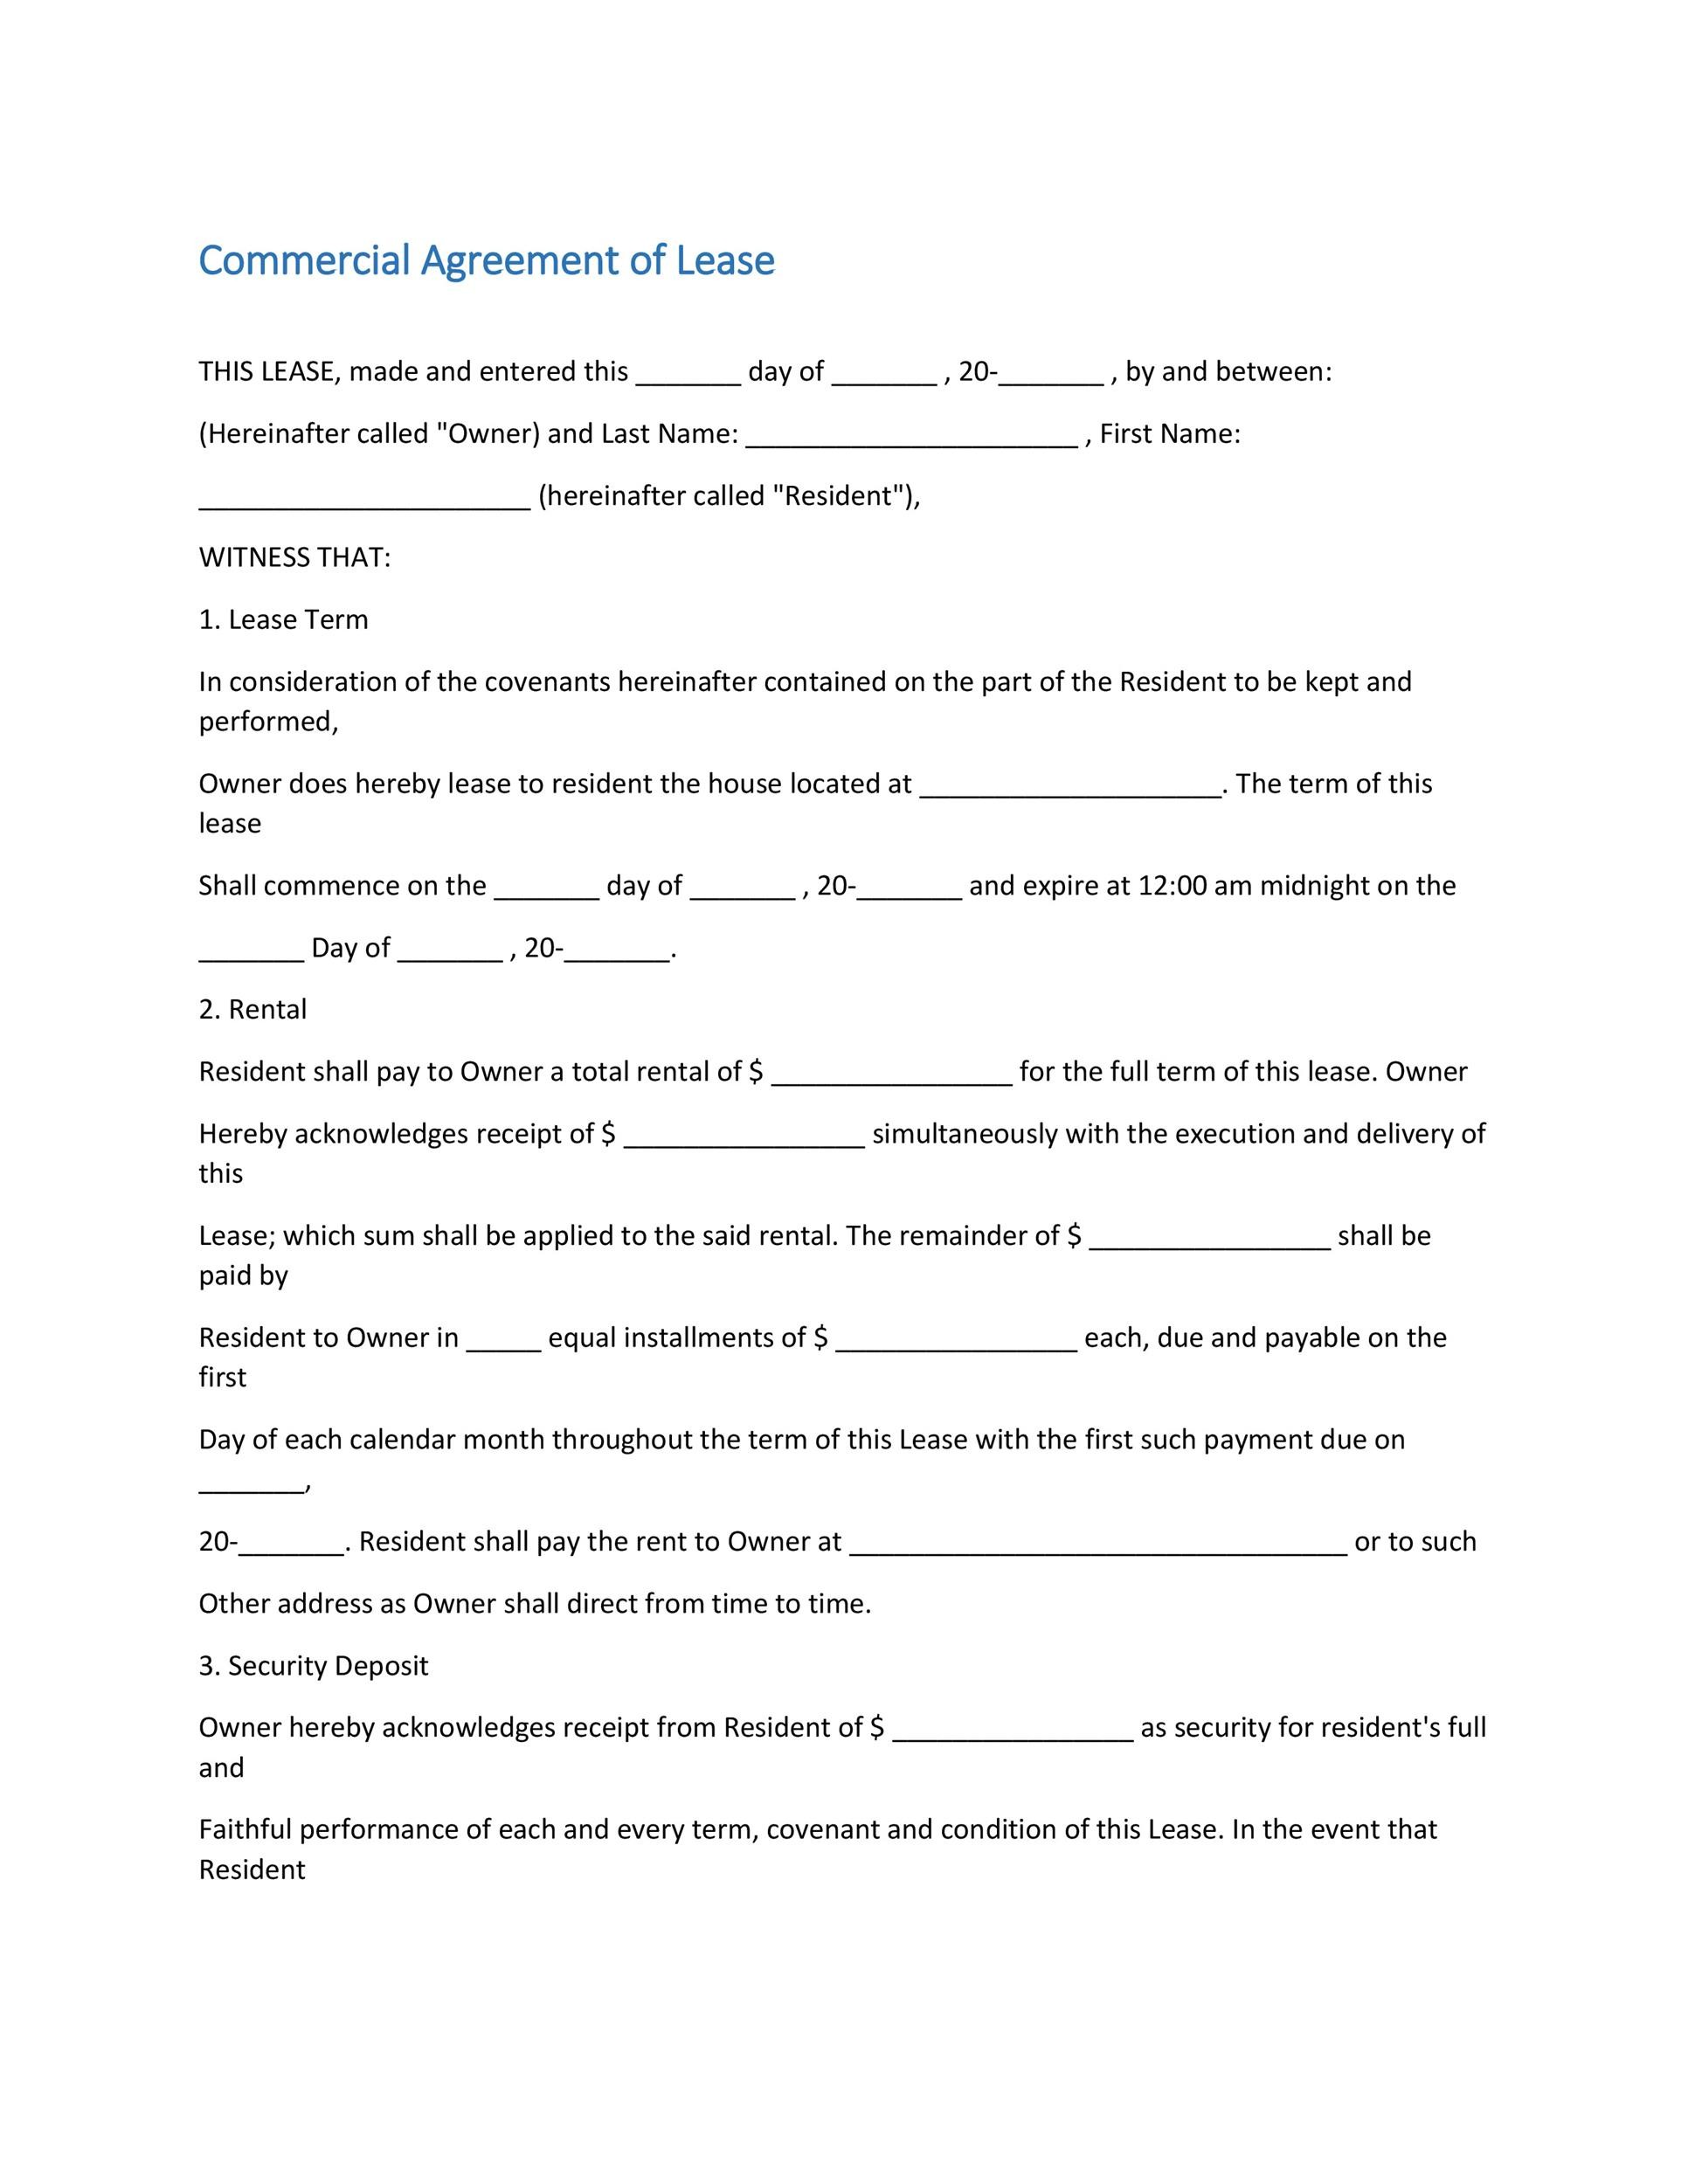 26 Free Commercial Lease Agreement Templates - Template Lab - rental agreement